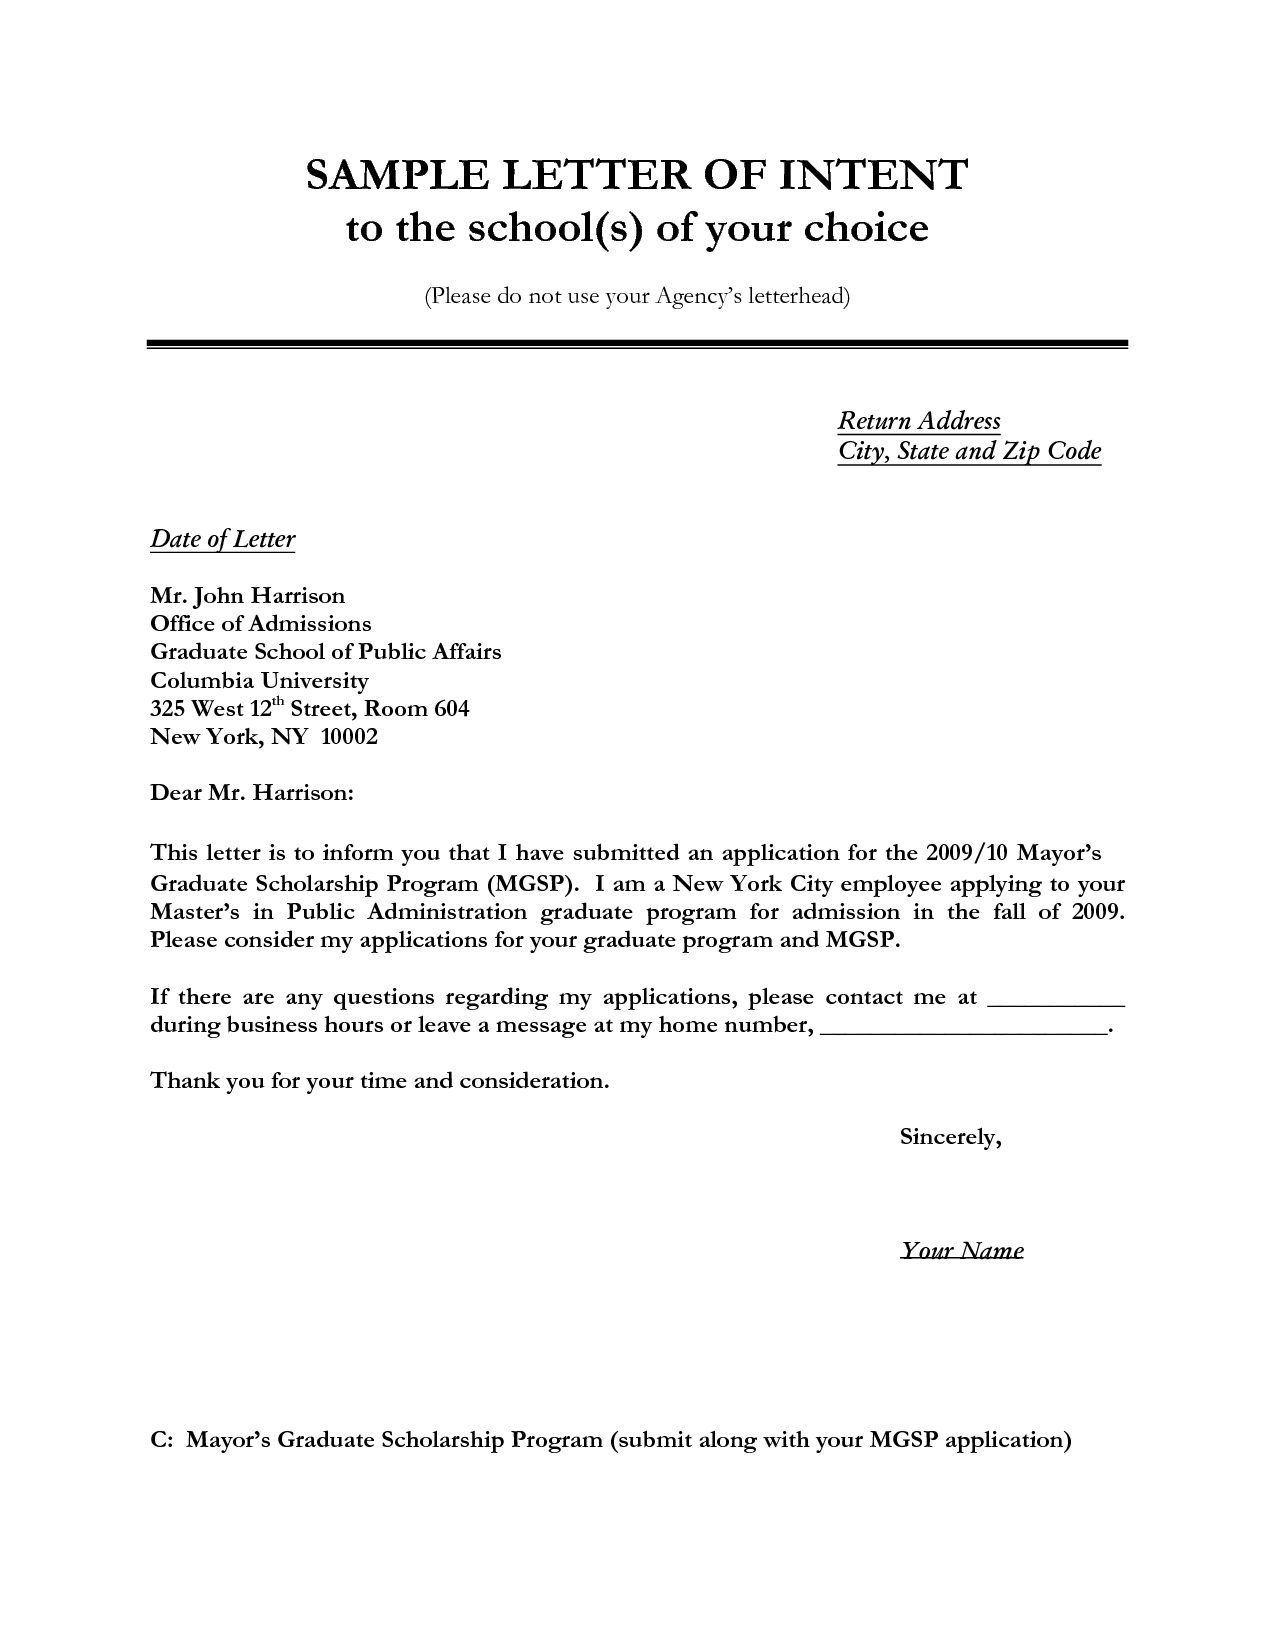 letter of intent to hire template example-letter of intent to hire template letter 3t 1-p